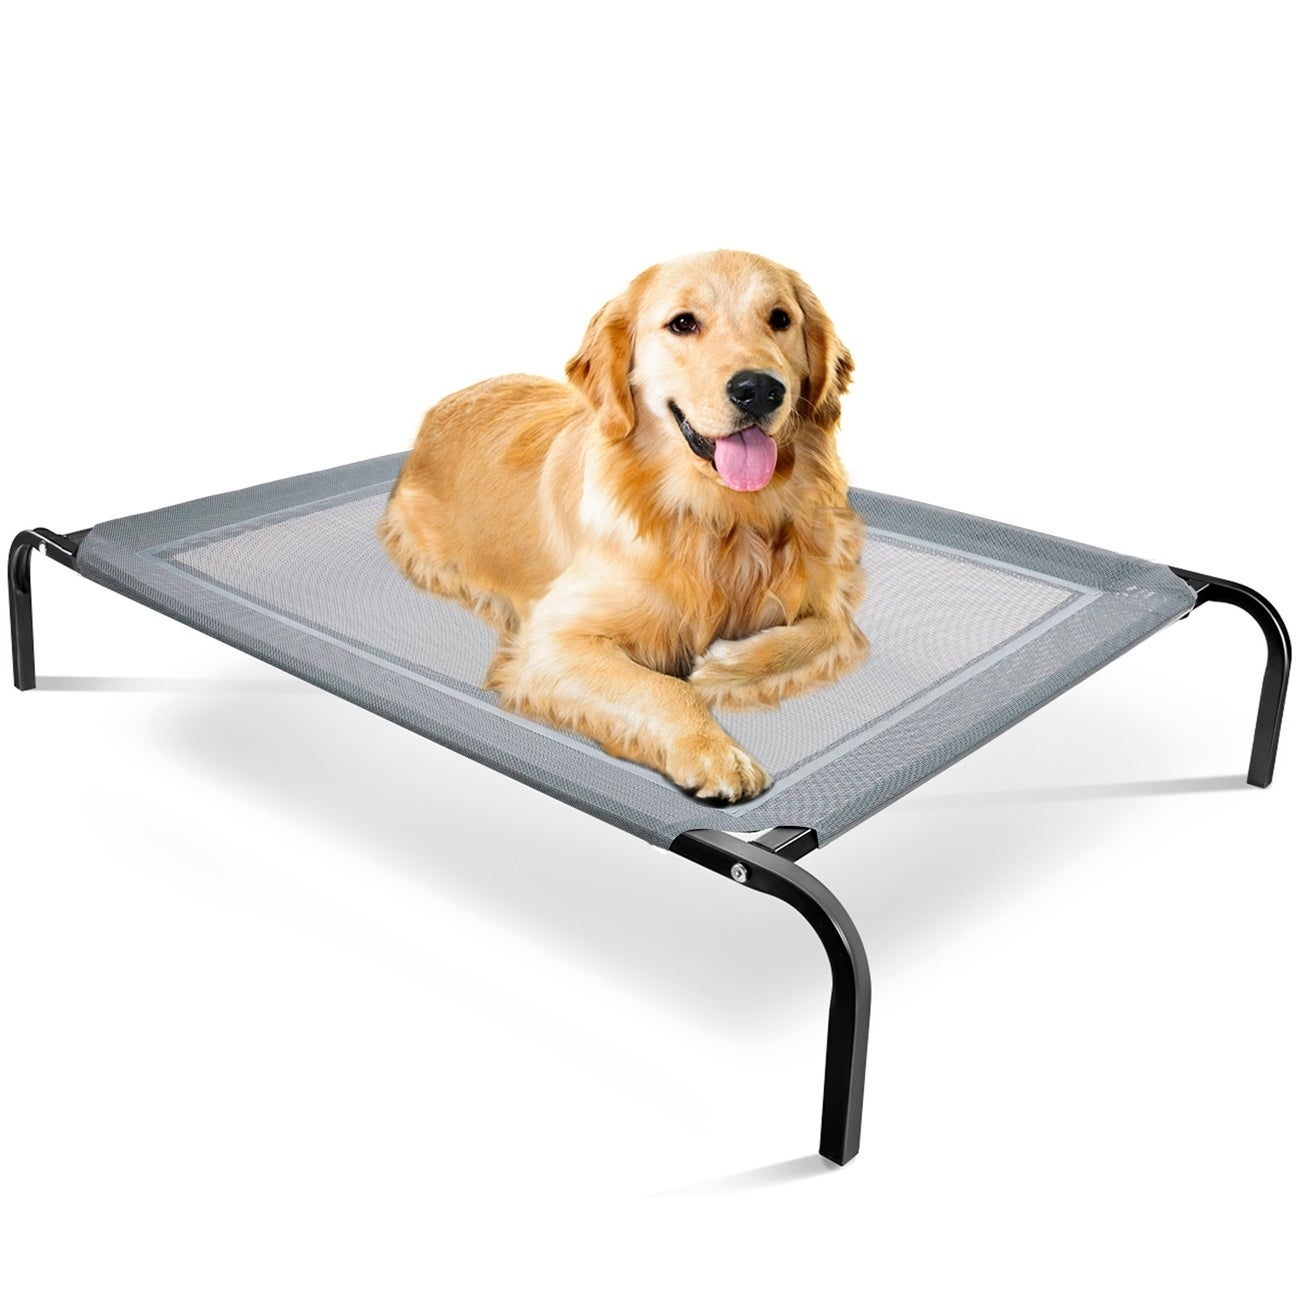 Paws & Pals Steel-Framed Portable Elevated Pet Bed Cat/Do...